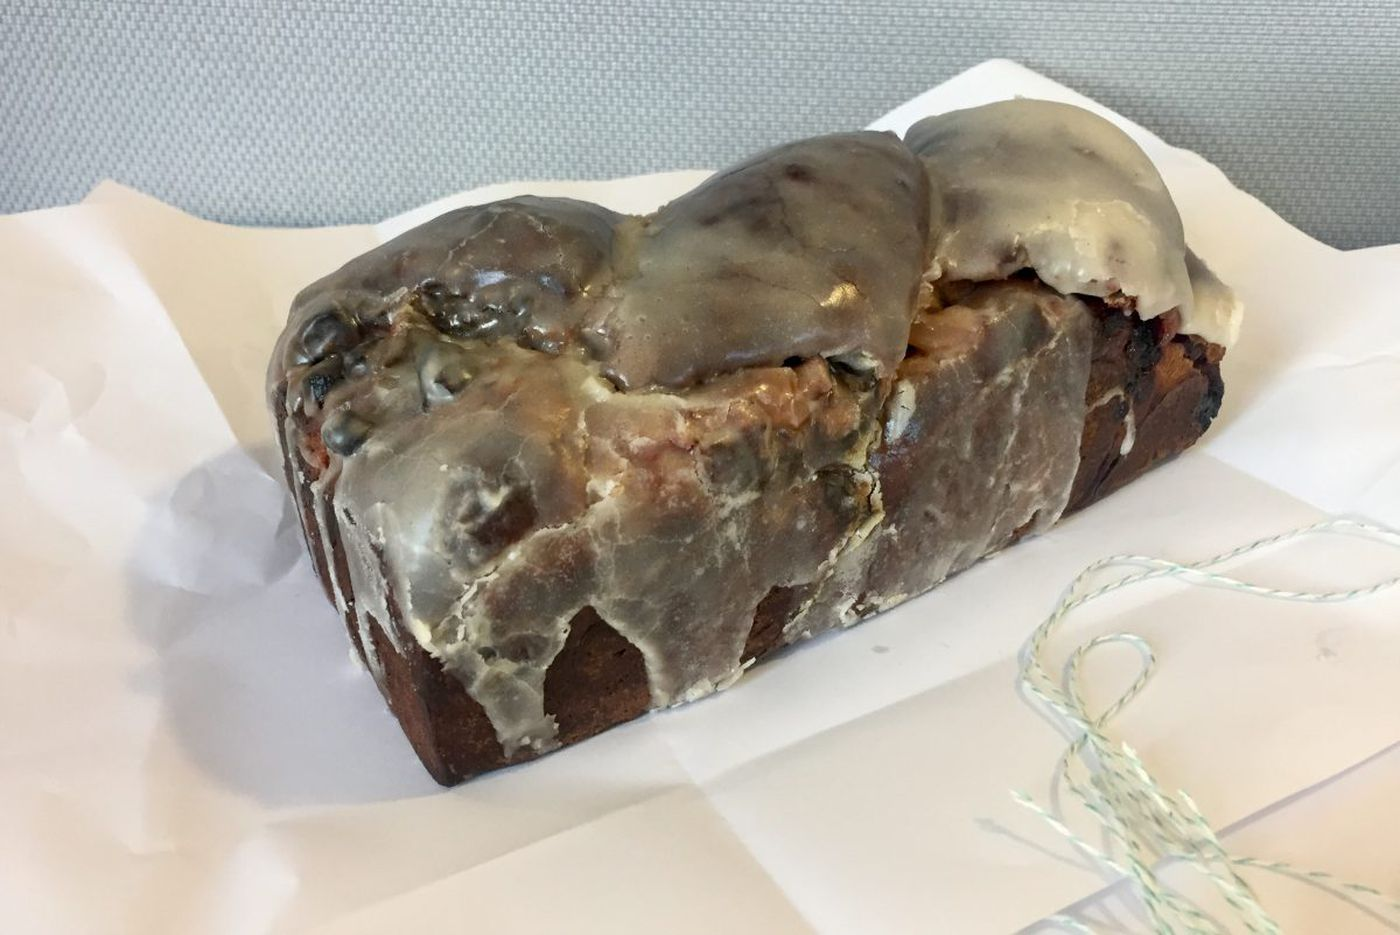 Walnut Street Cafe's holiday babka with cranberries and candied orange